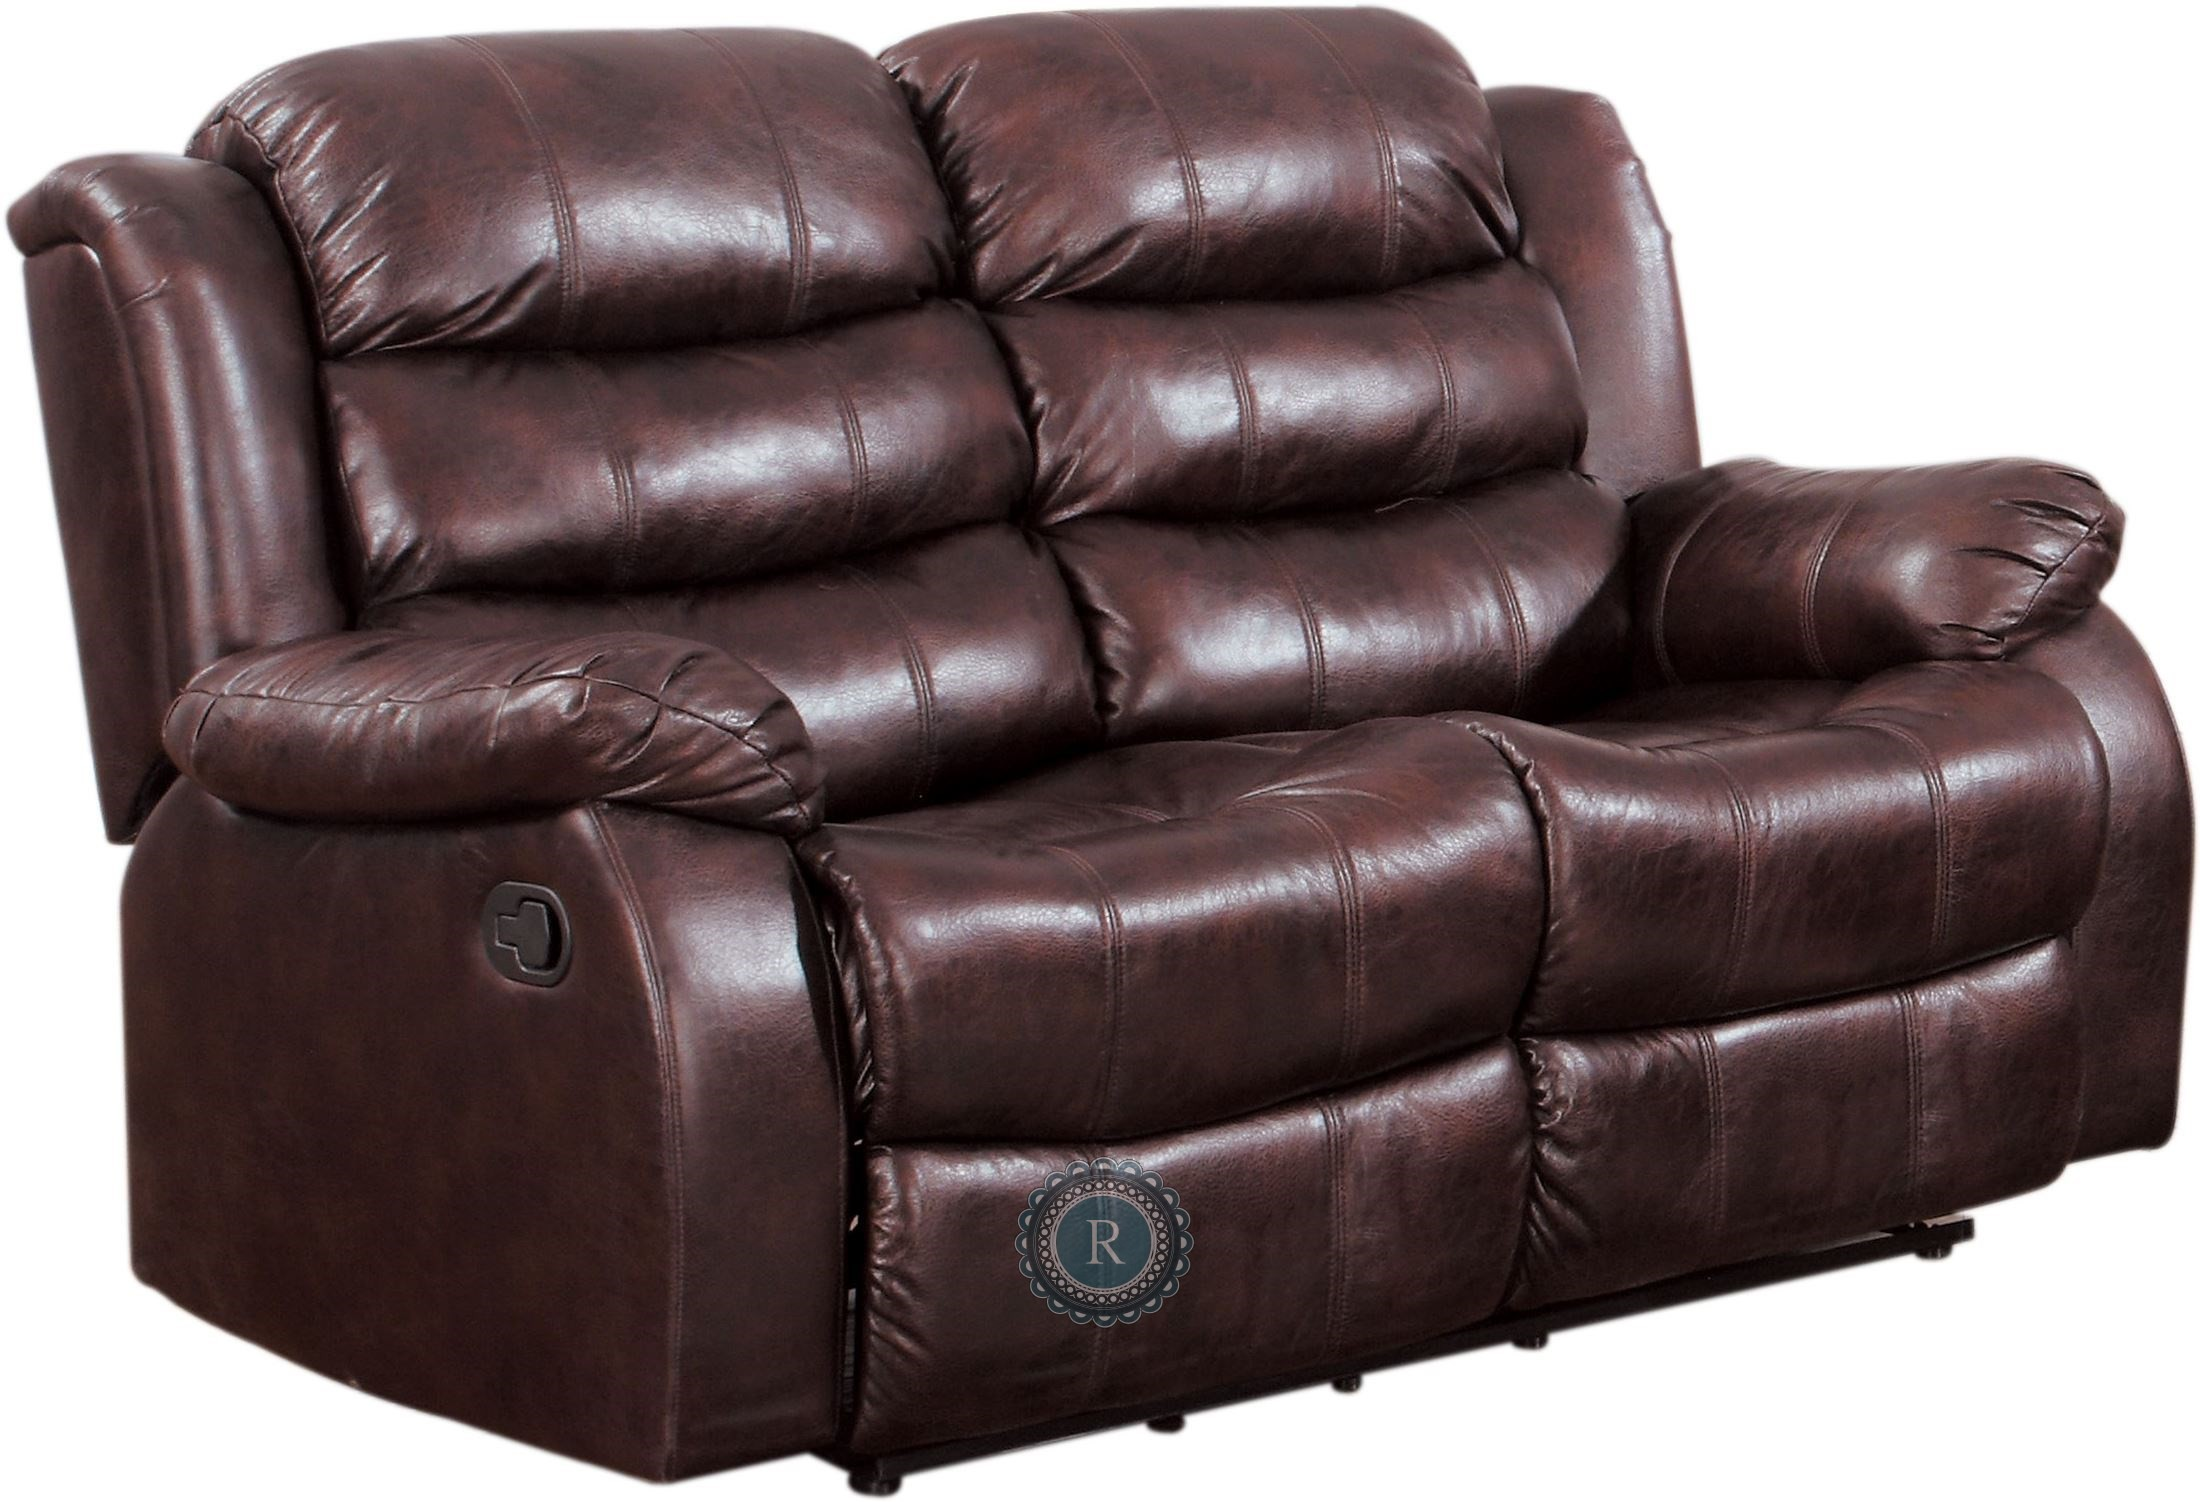 Smithee Burgundy Double Reclining Loveseat From